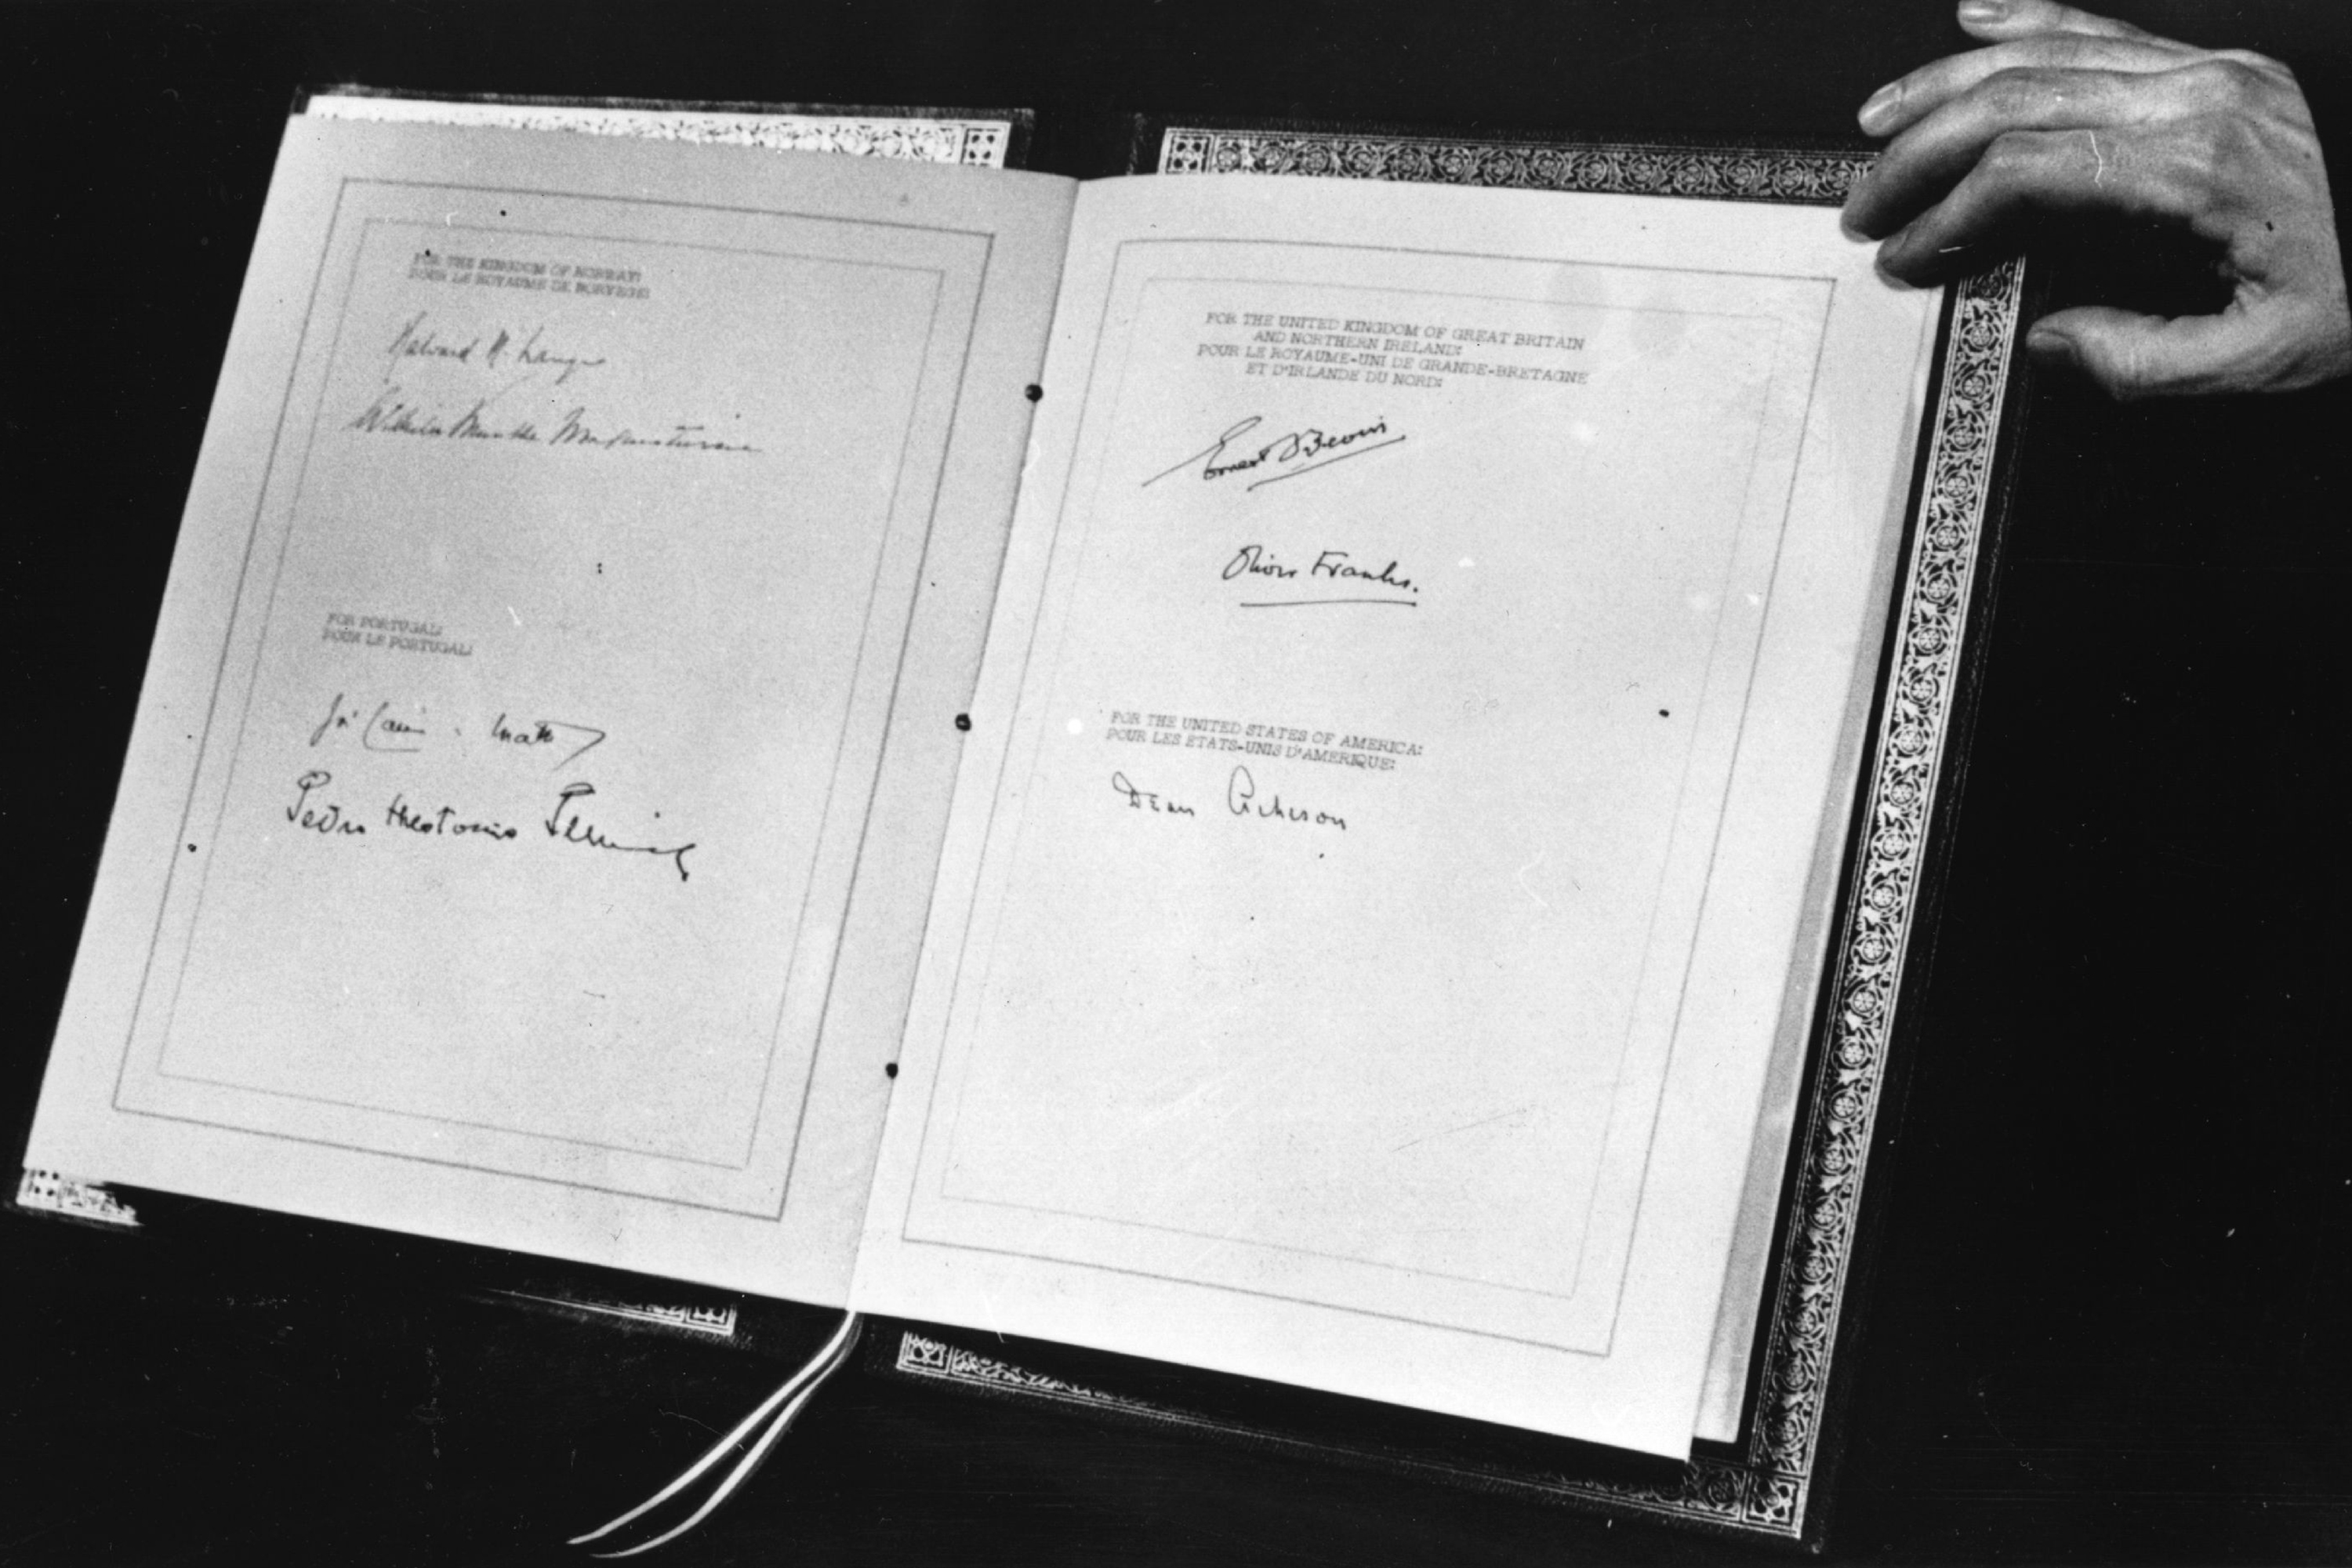 The April 4, 1949 document that established the North Atlantic Treaty Organization, showing the signatures of foreign secretaries and ambassadors of the original signing nations – Belgium, Britain, Canada, Denmark, France, Iceland, Italy, Luxembourg, the Netherlands, Norway, Portugal, and the United States. NATO was established for the purposes of collective security. Because the document was signed in the U.S., the signature of Secretary of State Dean Acheson is the last to appear. (Photo by Keystone/Getty Images)